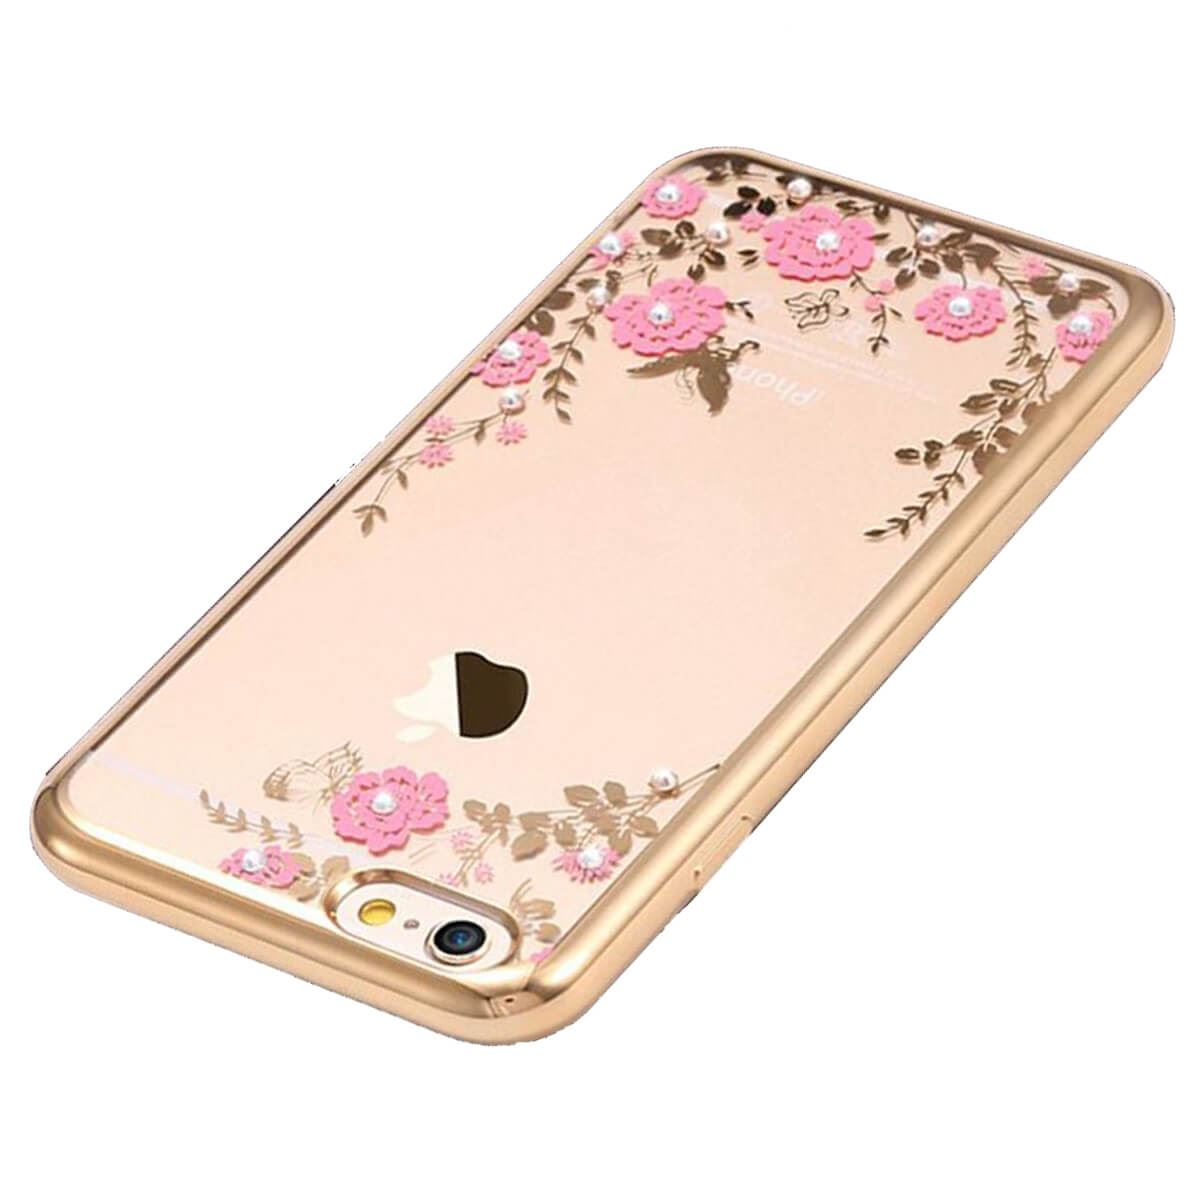 Soft-Gel-Case-For-iPhone-X-8-7-6-5s-5-Flower-Bling-Glitter-Diamond-Sparkly-Cover thumbnail 3